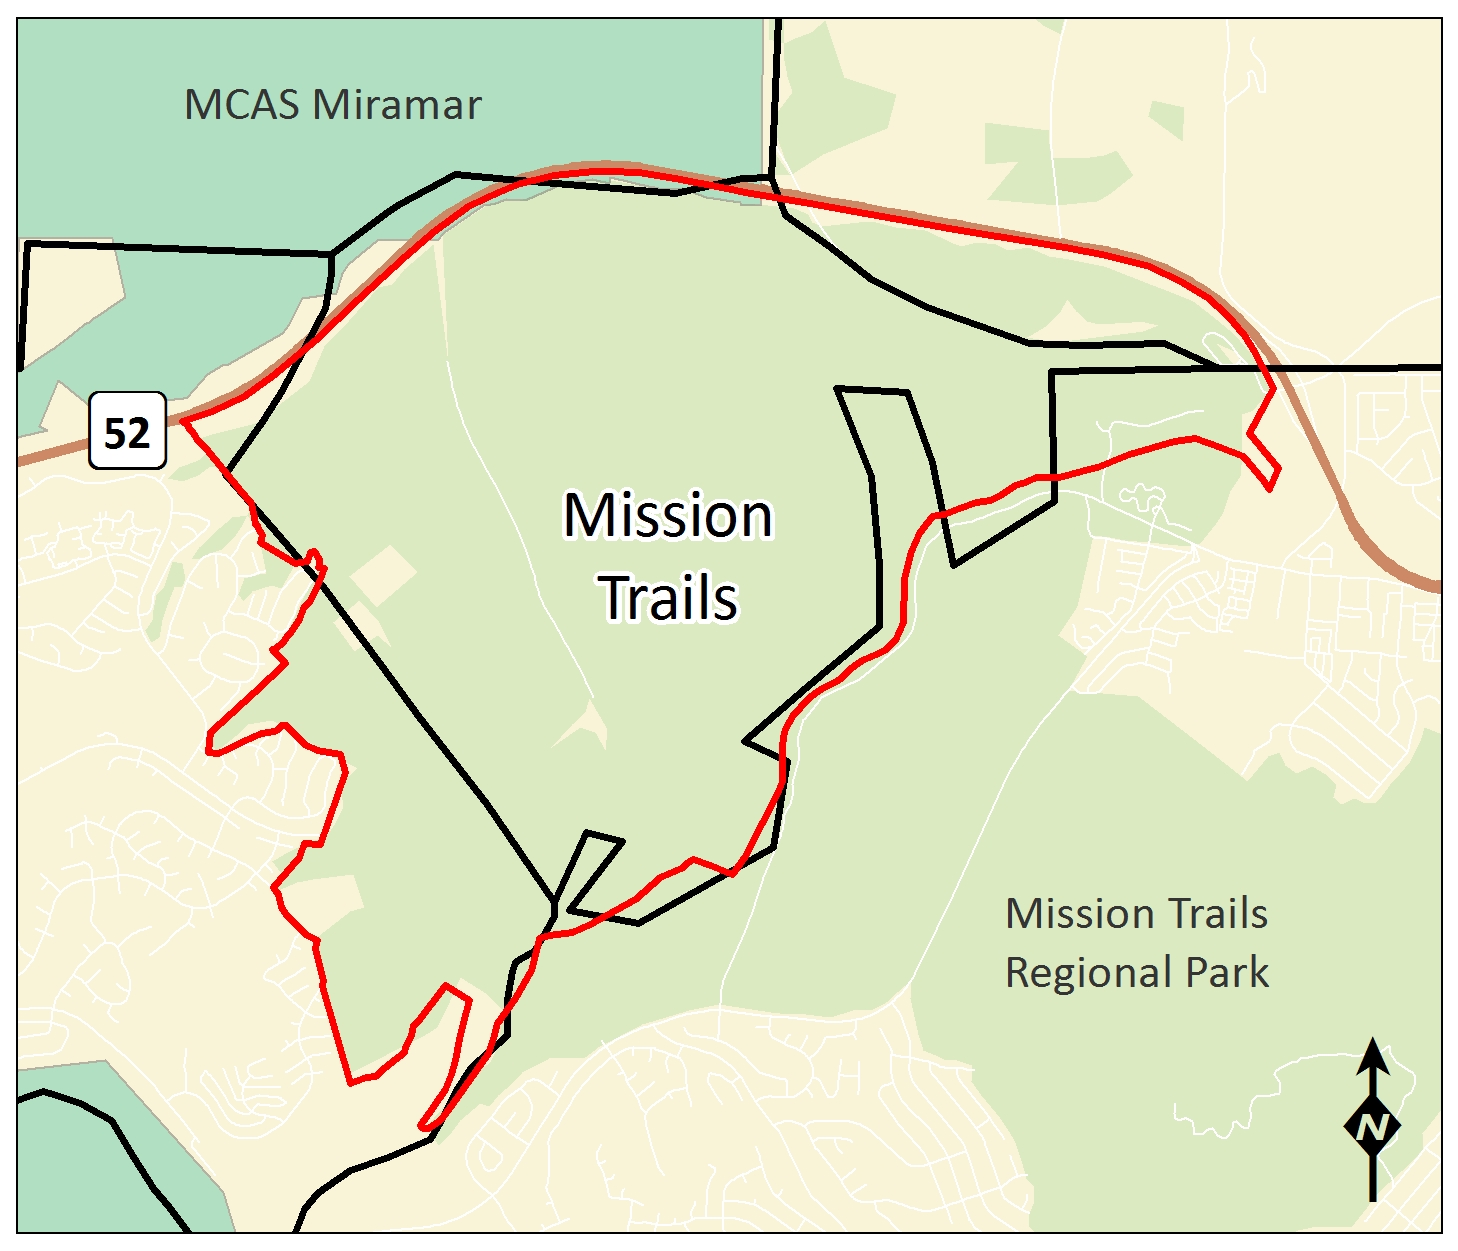 Mission Trails on